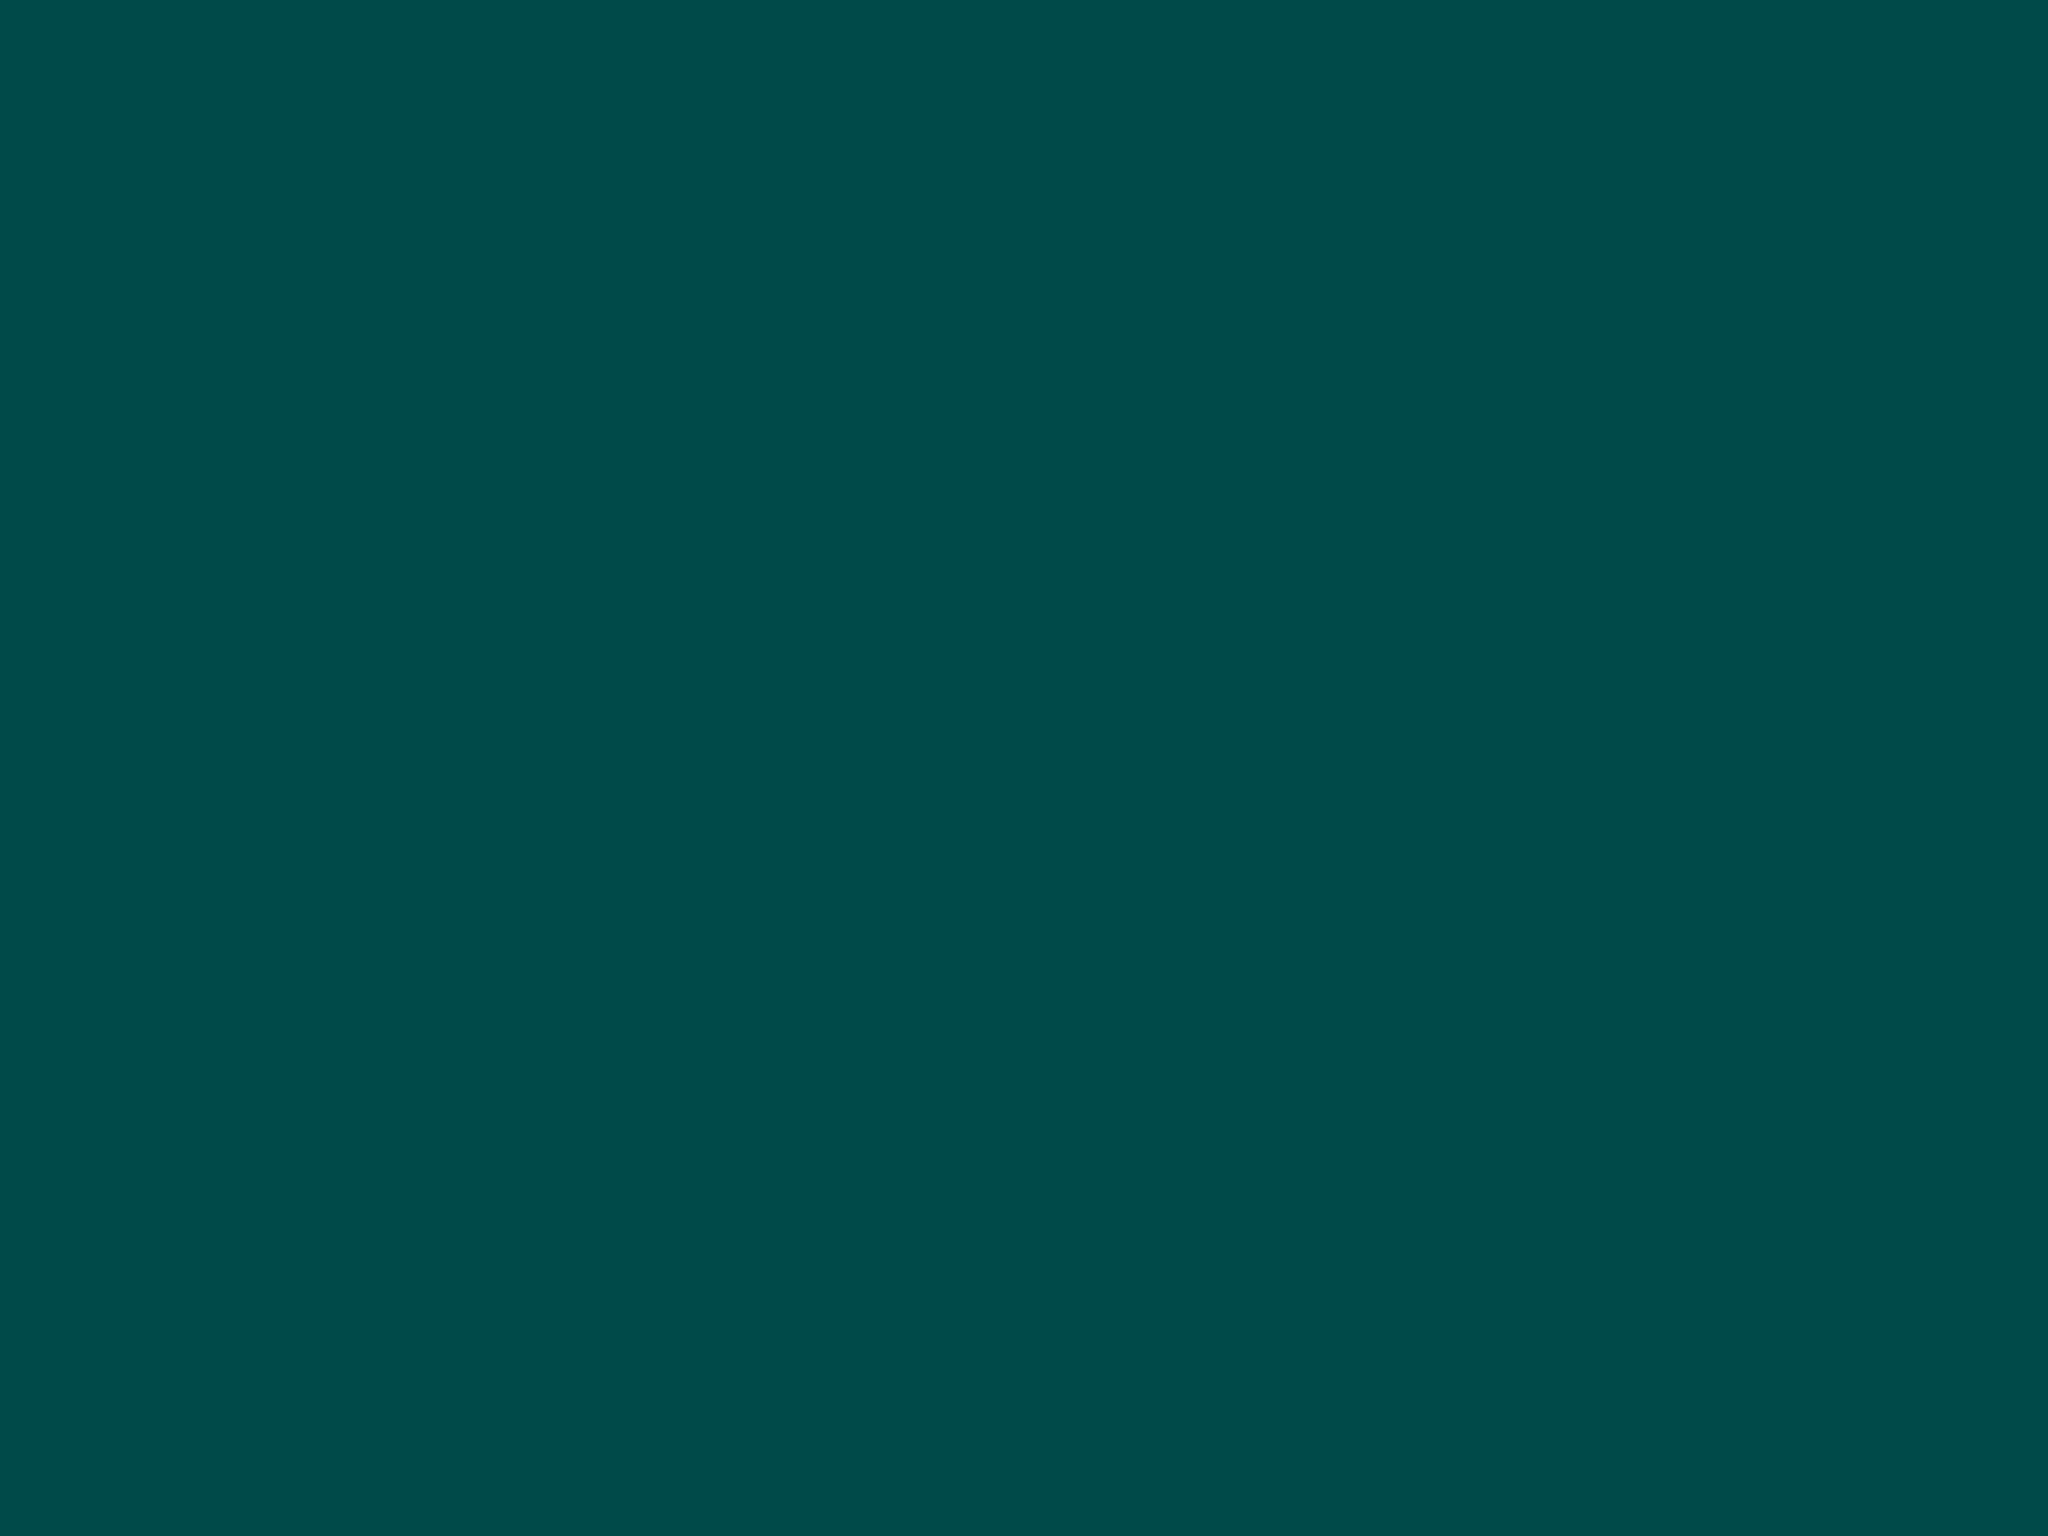 2048x1536 Deep Jungle Green Solid Color Background